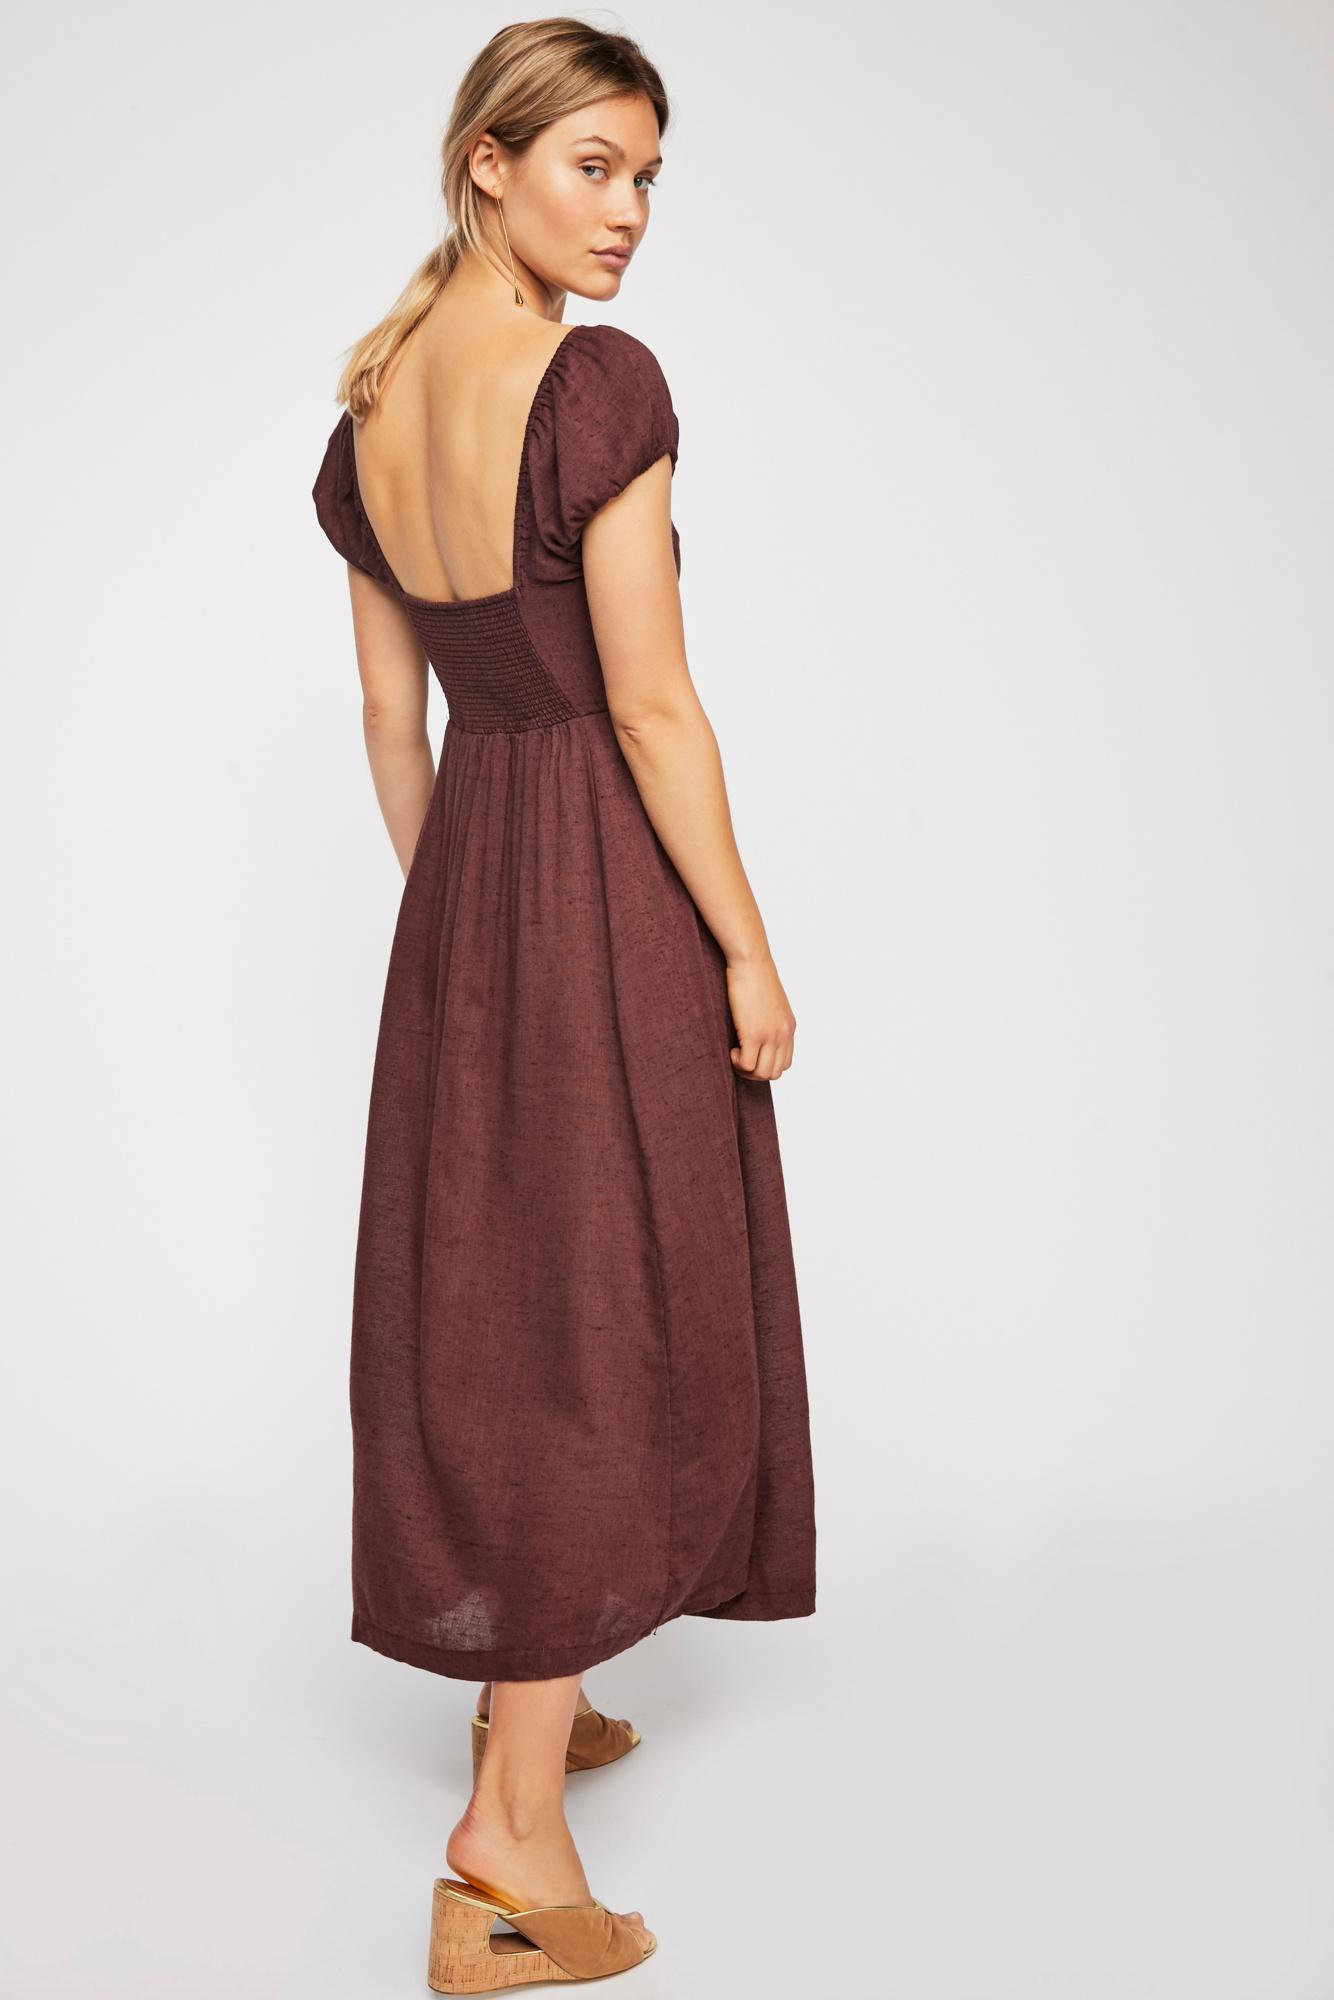 a1001b11542c Lyst - Free People The Getaway Midi Dress By Endless Summer in Brown